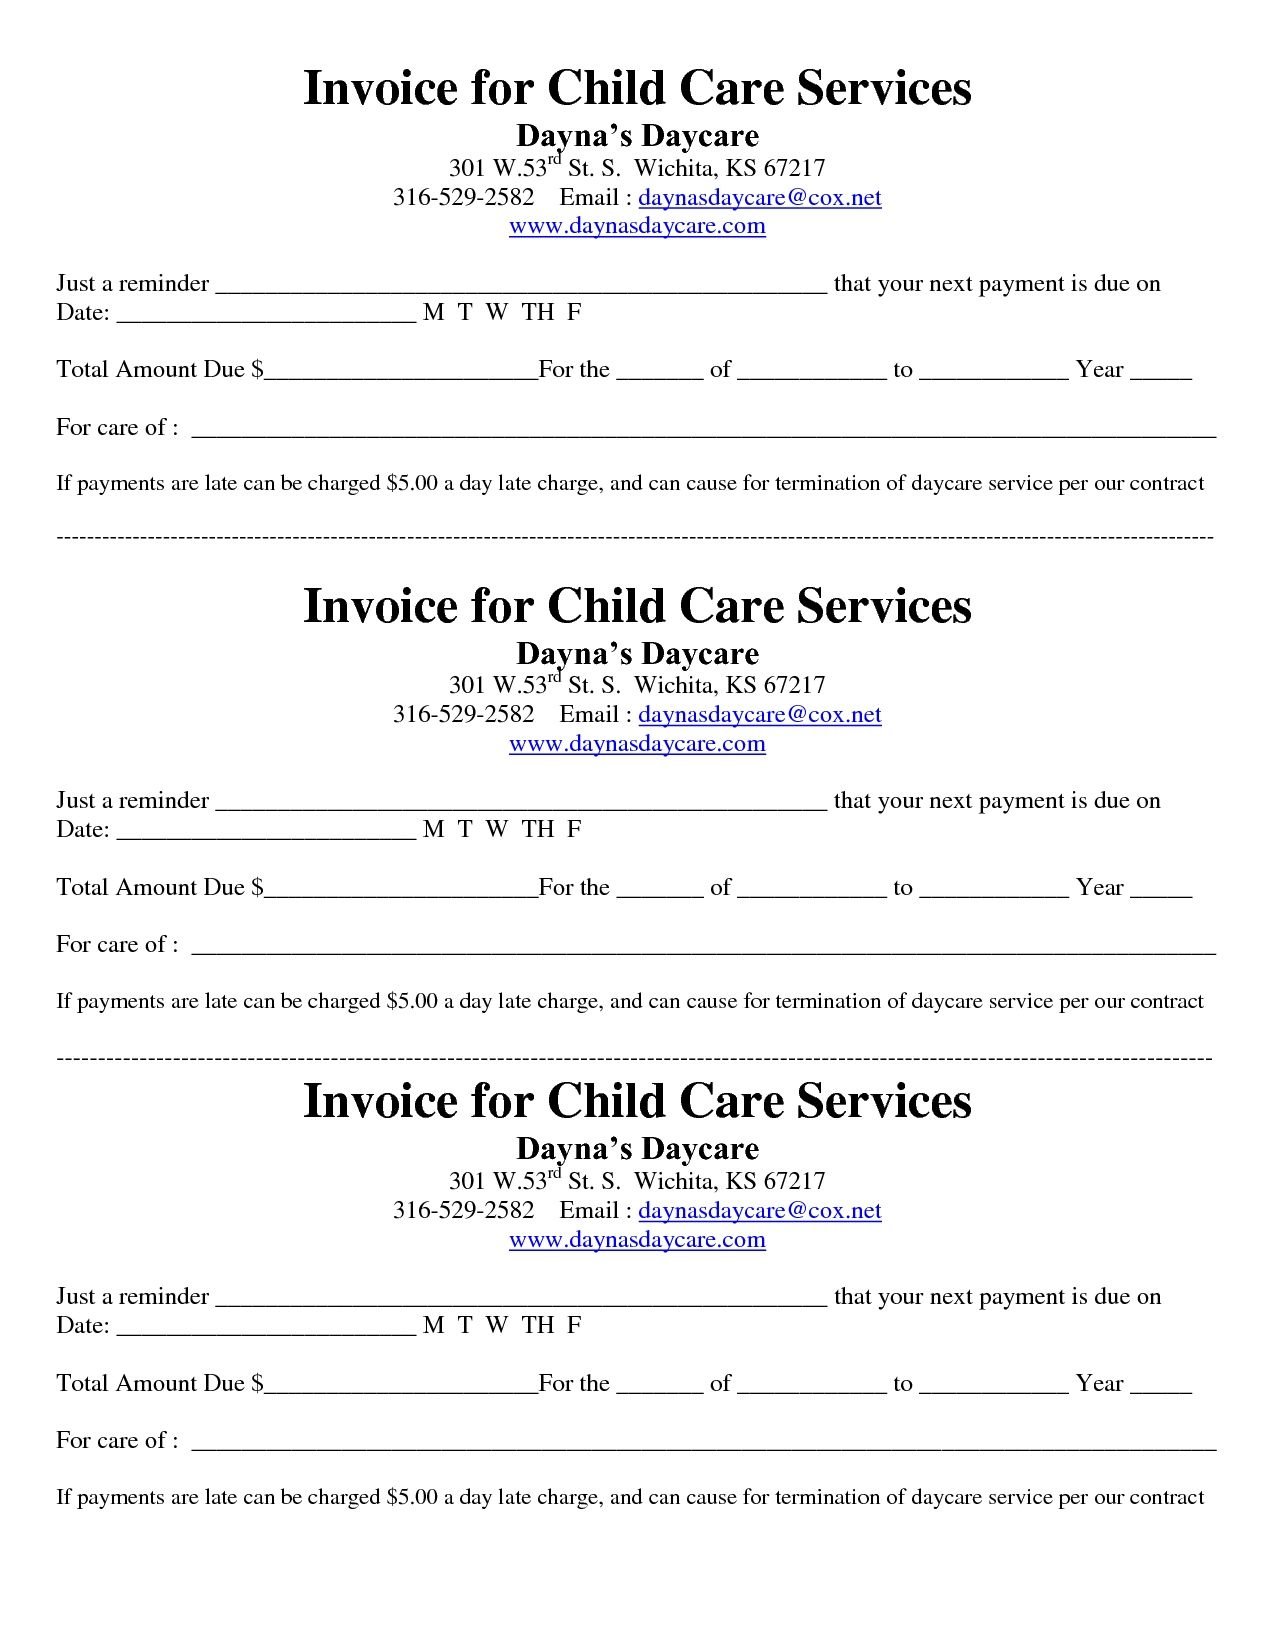 Child Care Receipt/invoice | Jordi Preschool - Free Printable Daycare Receipts